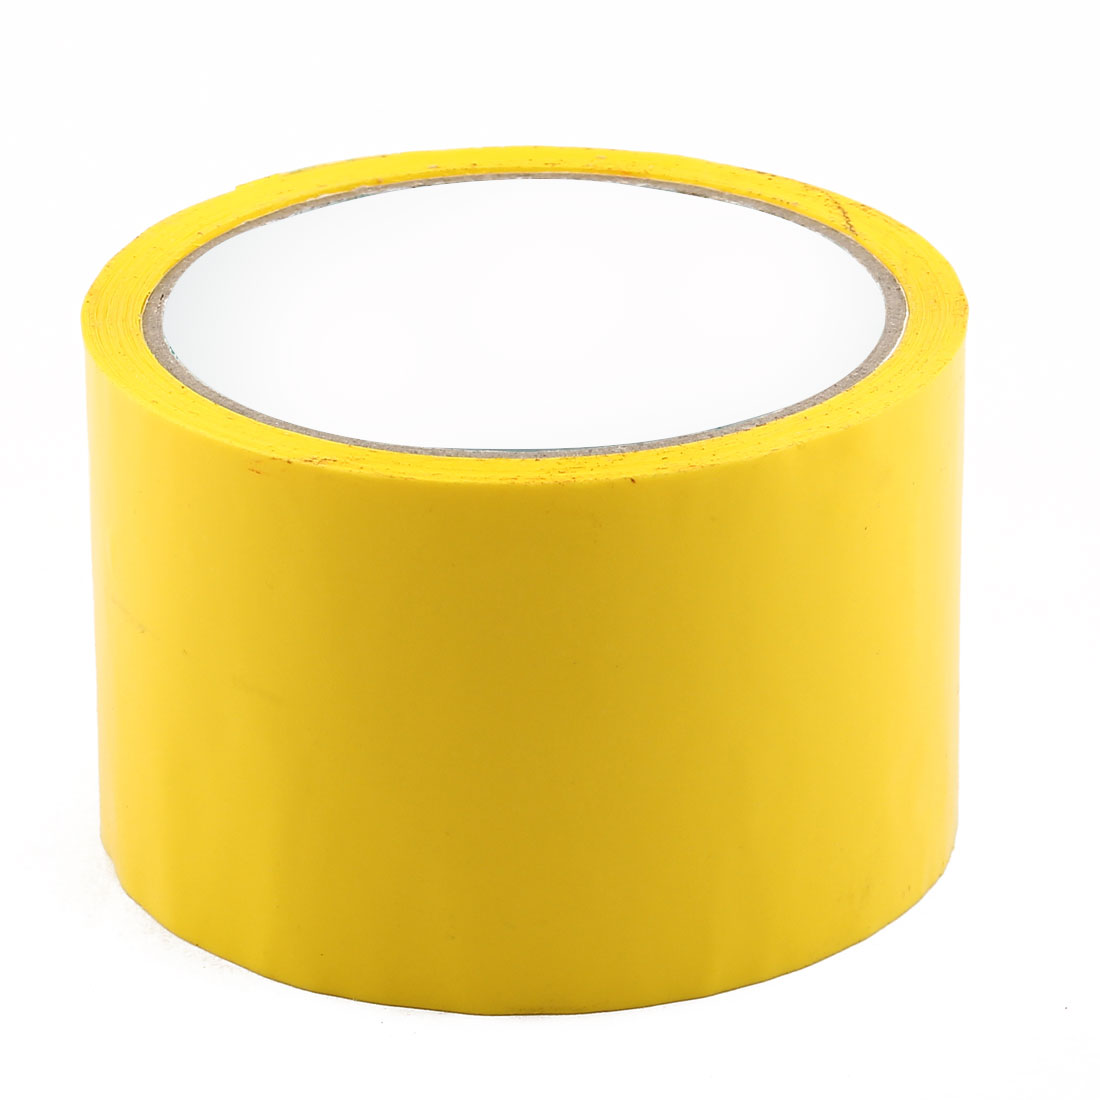 Shipping PVC Box Parcel Sealing Adhesive Tape Yellow 2.4'' x 32.8 Yards(98.4 Ft)